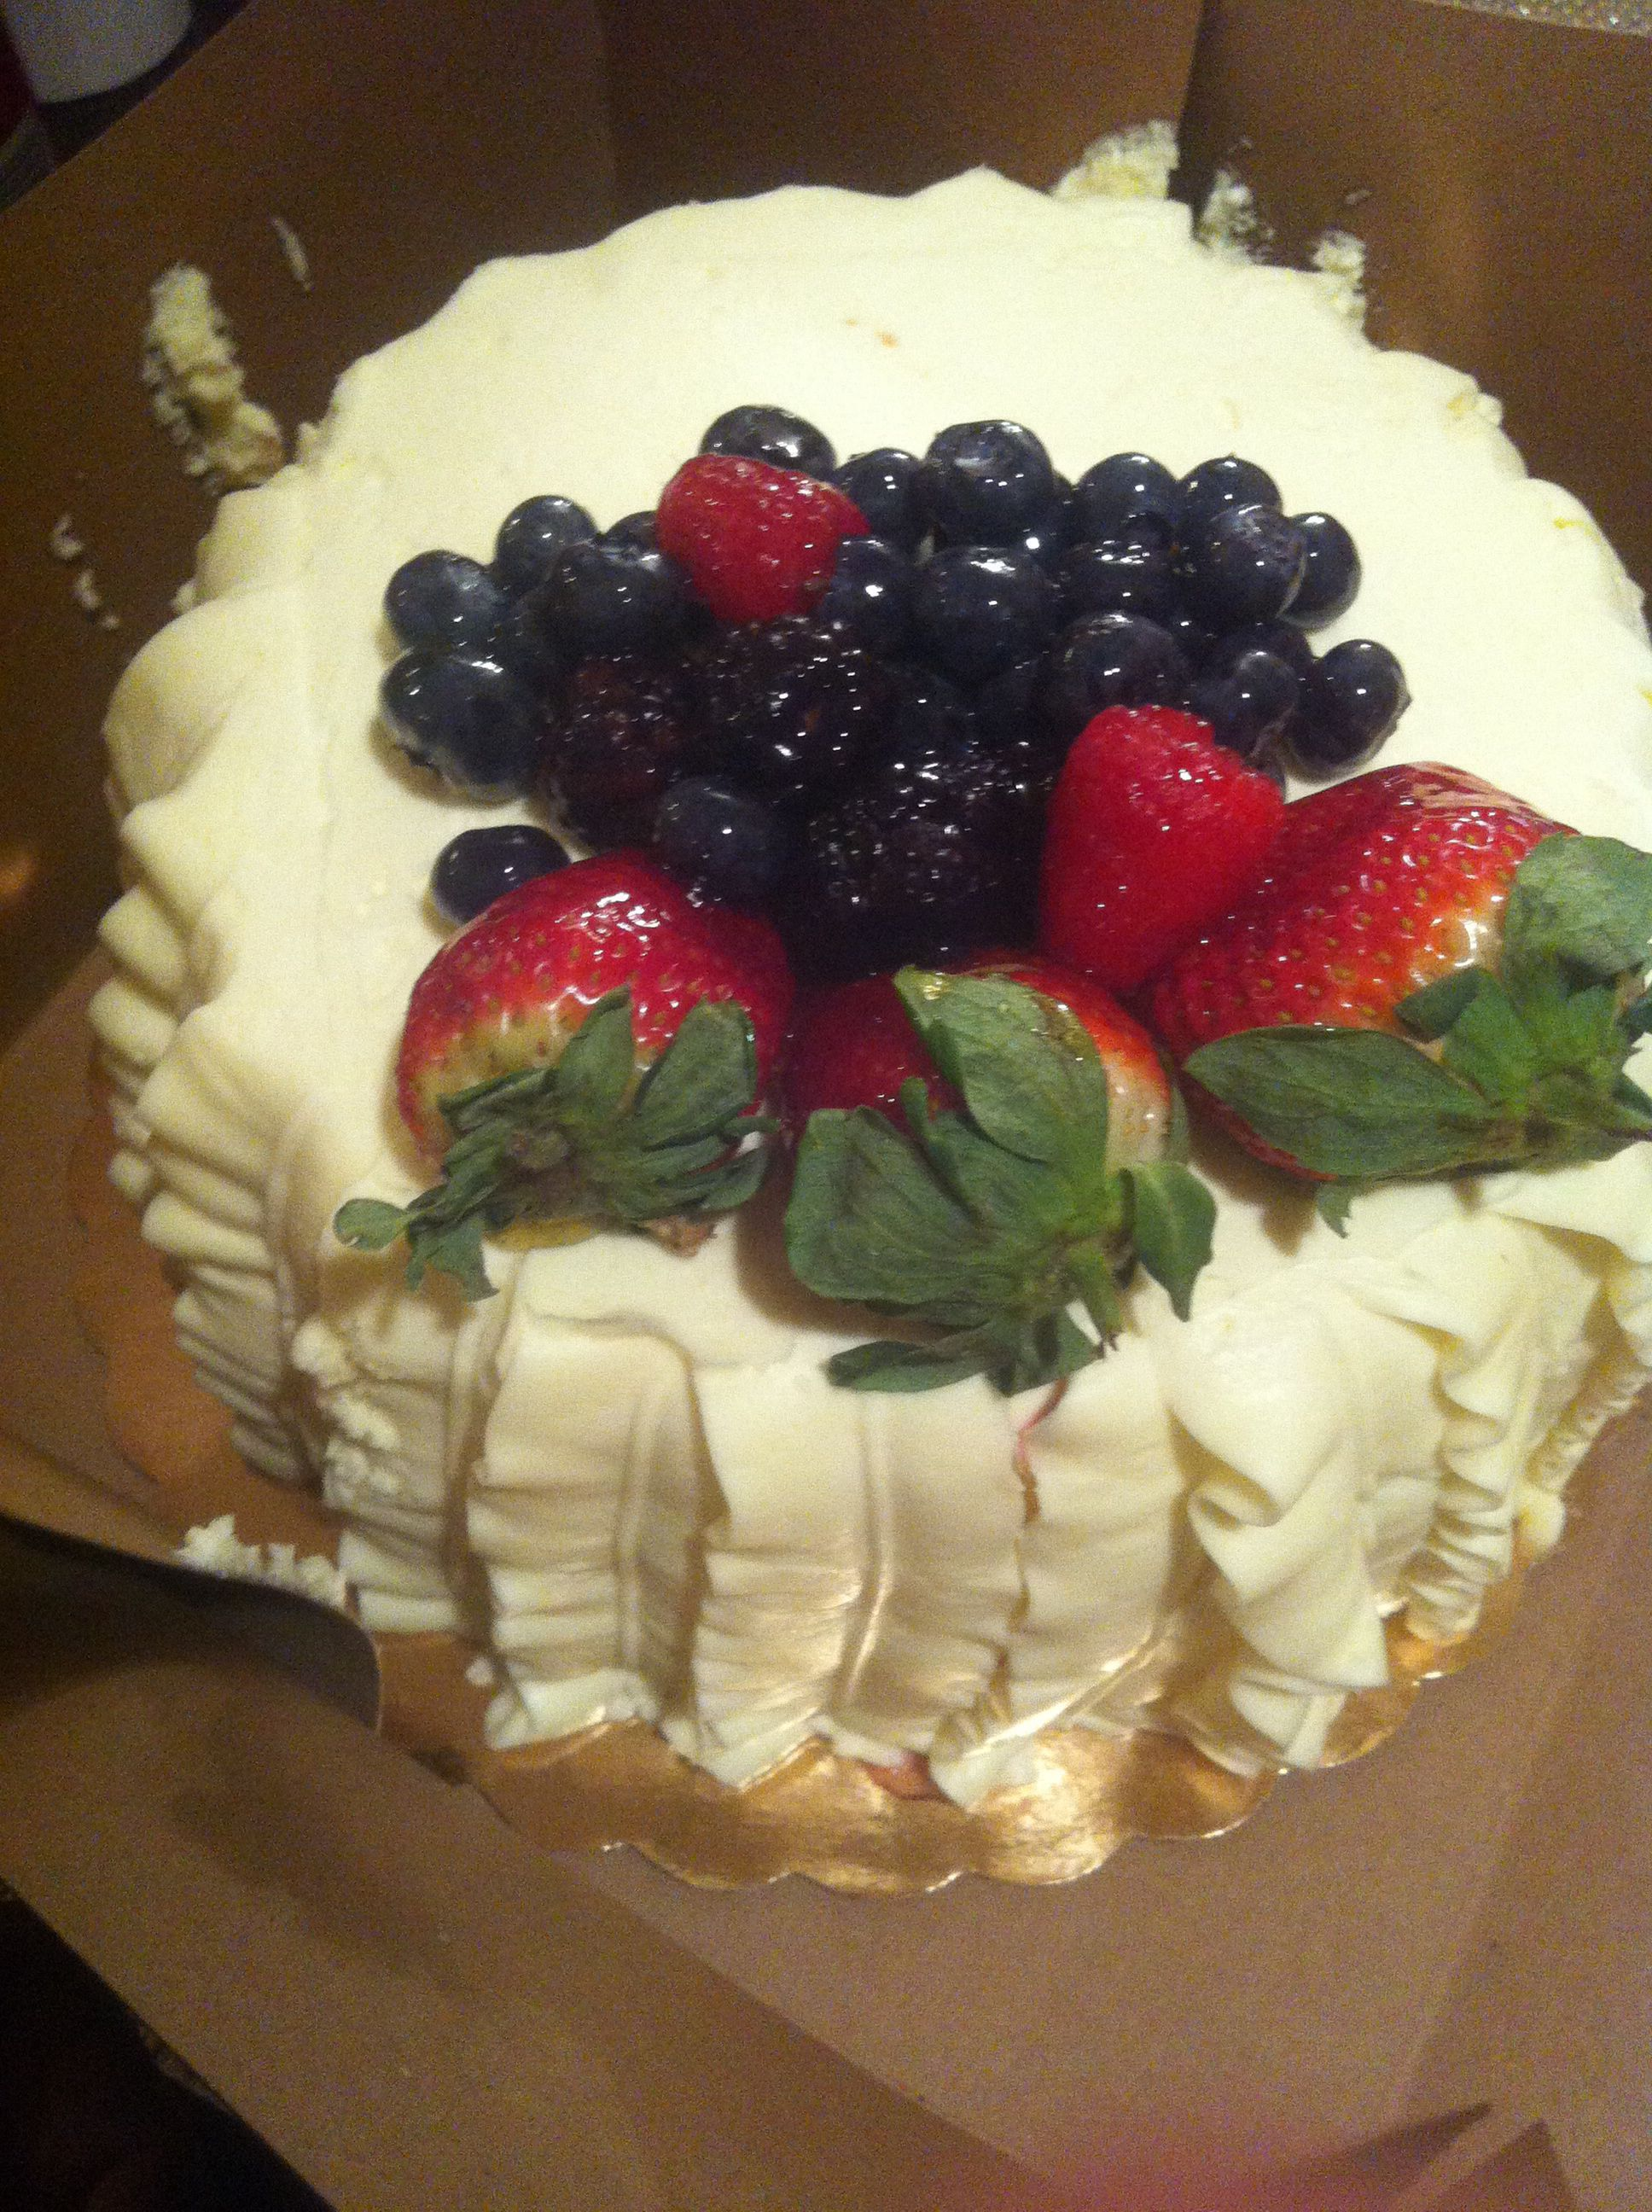 Delicious Chantilly fruit cake from Whole Foods one on my